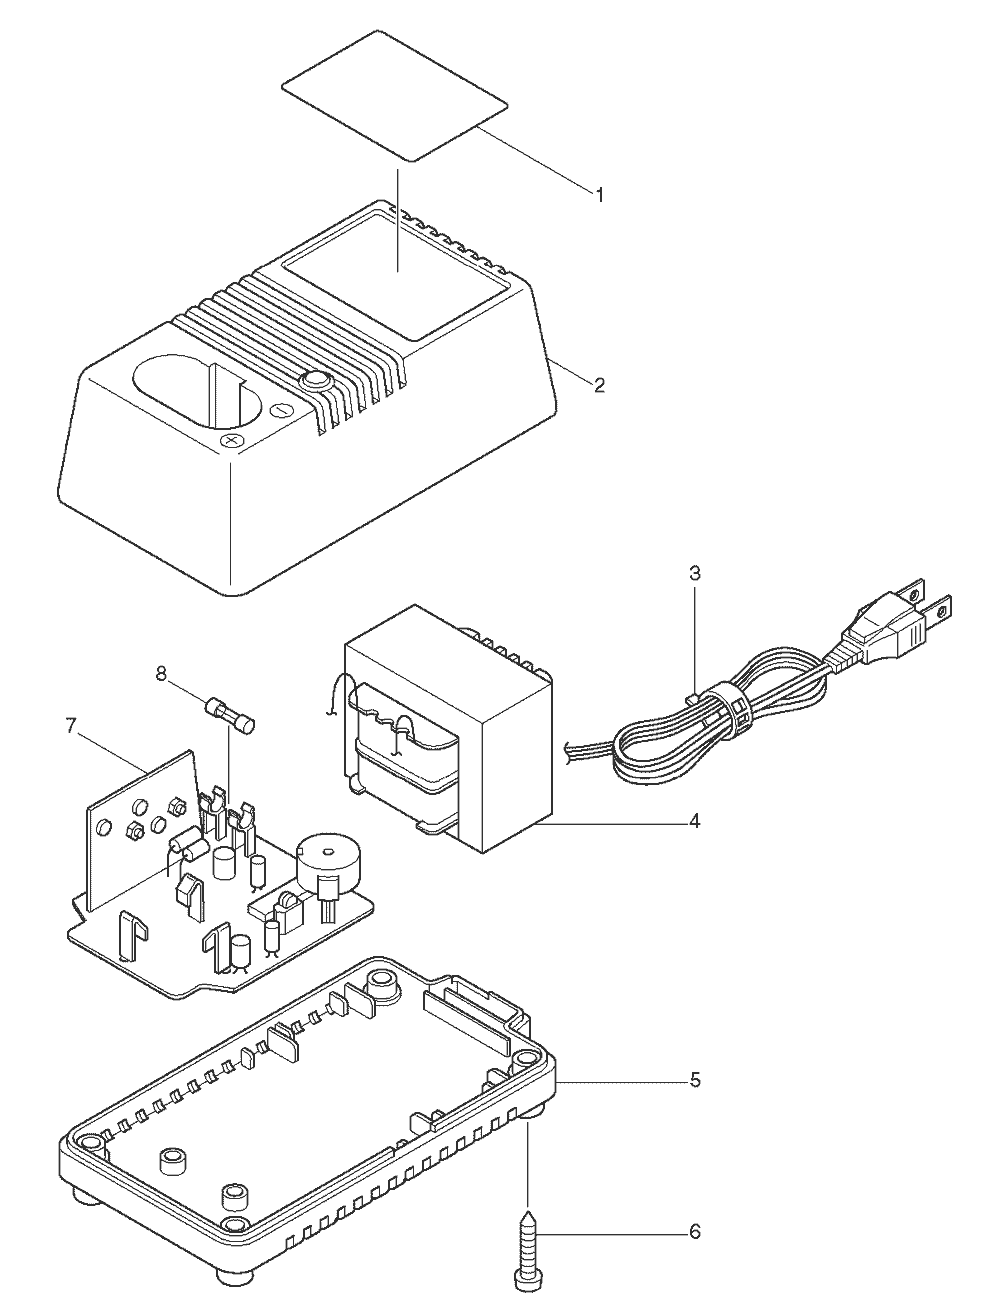 hight resolution of makita dc1201 parts schematic